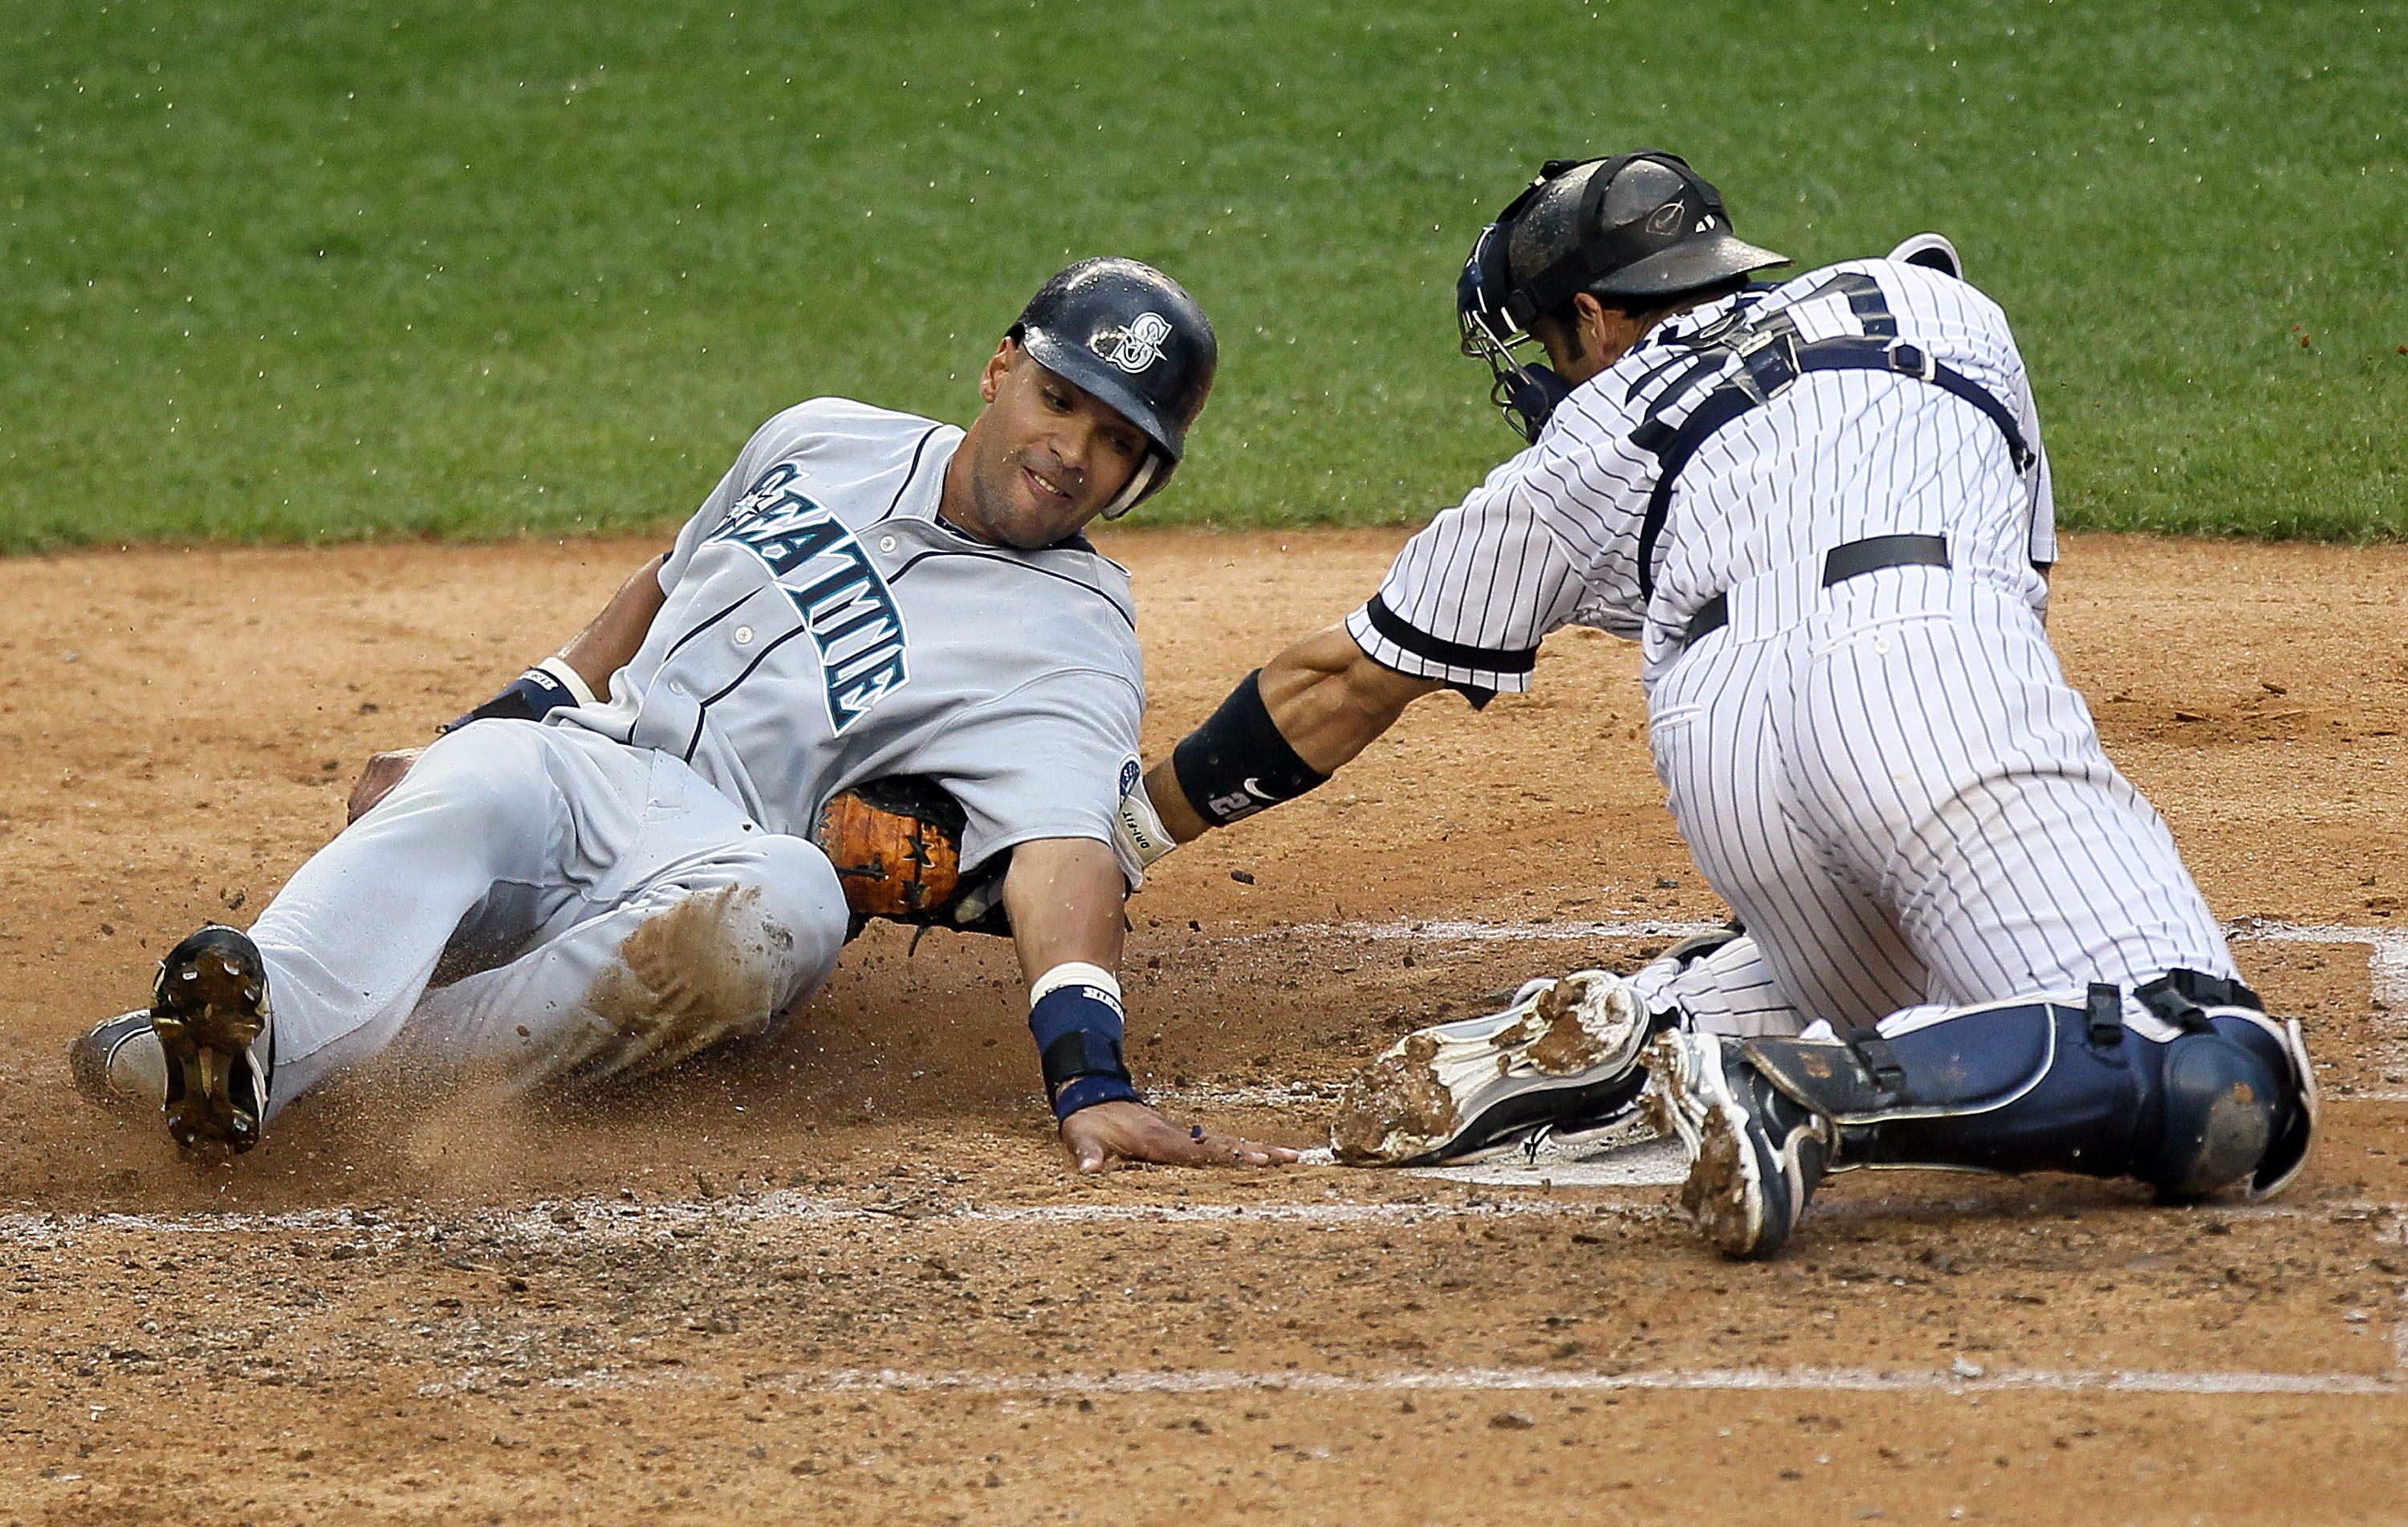 NEW YORK - AUGUST 22:  Franklin Gutierrez #21 of the Seattle Mariners is out at the plate on the tag from Jorge Posada #20 of the New York Yankees during the fifth inning on August 22, 2010 at Yankee Stadium in the Bronx borough of New York City.  (Photo